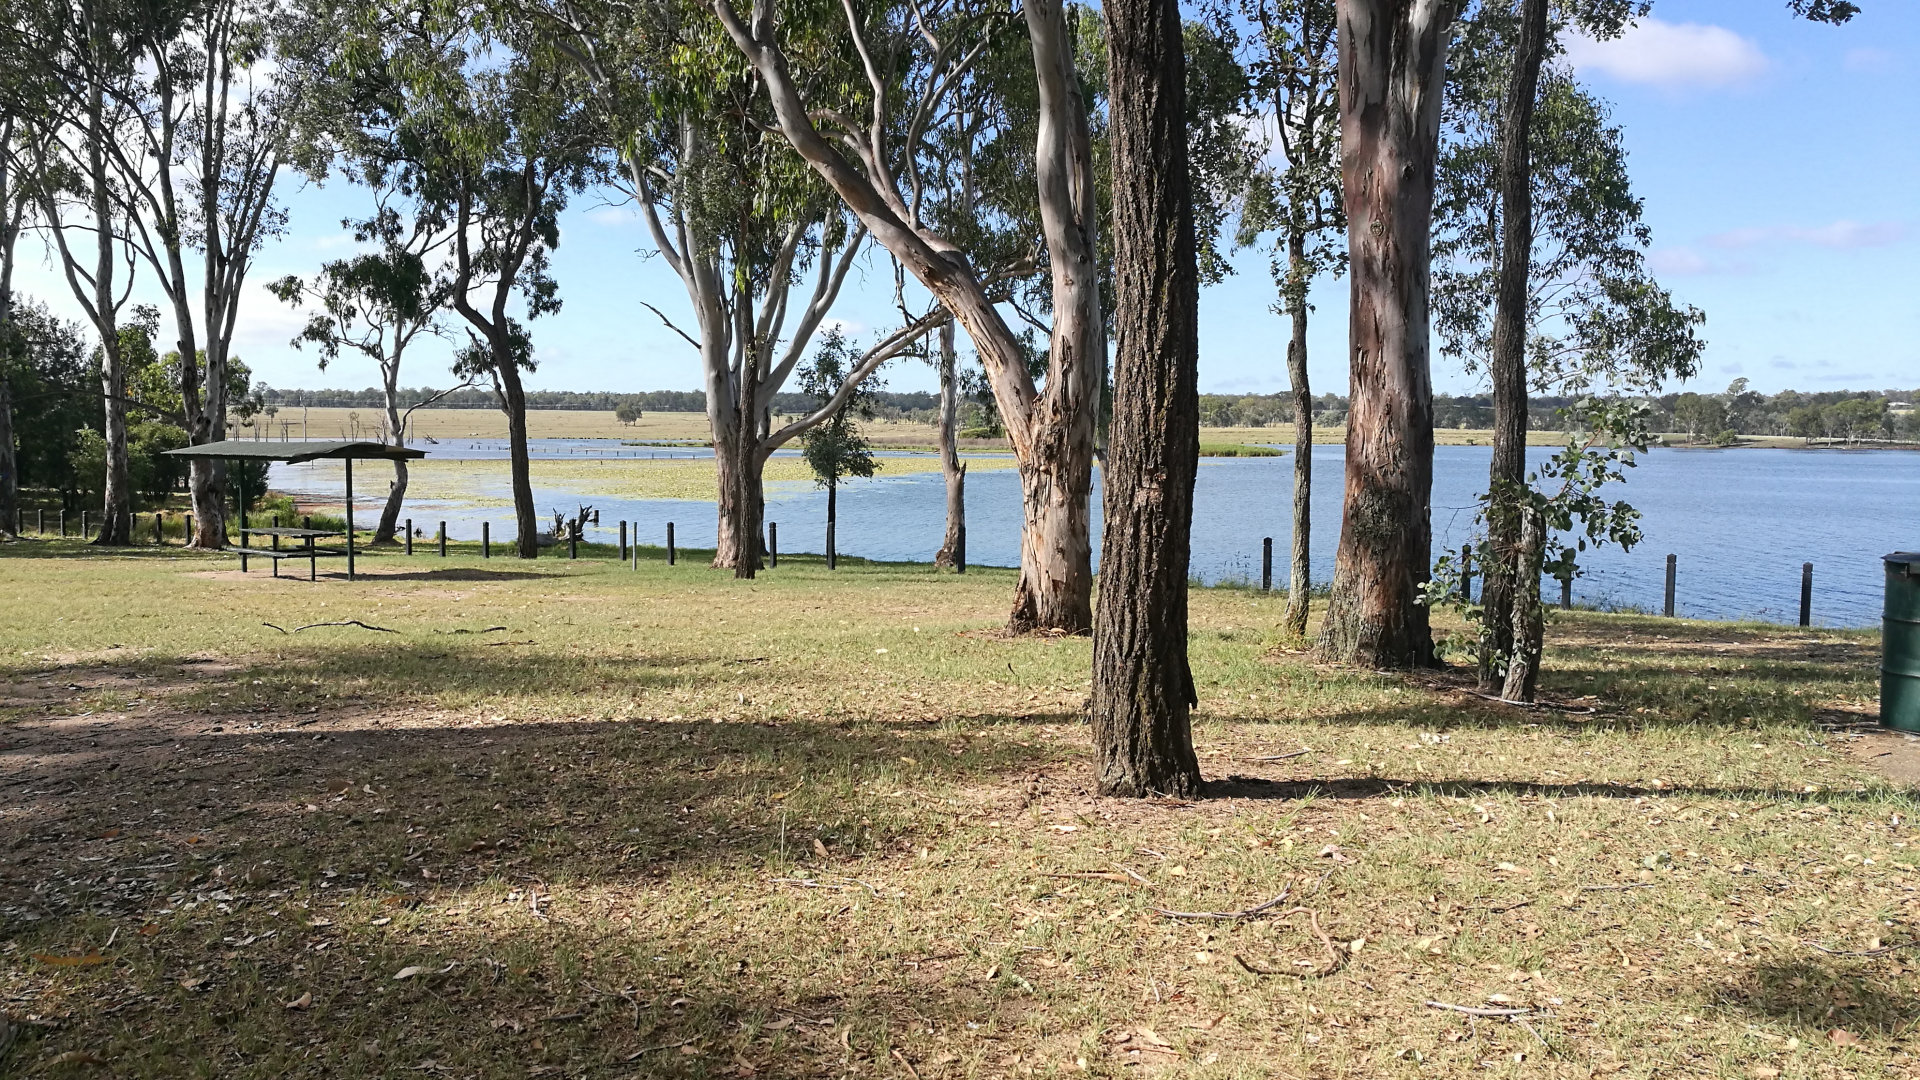 Grass area of Gordonbrook Dam with picnic table and dam water in the background. Gordonbrook Dam is the water supply to Kingaroy, with a day use area, walking trails, and bird hide